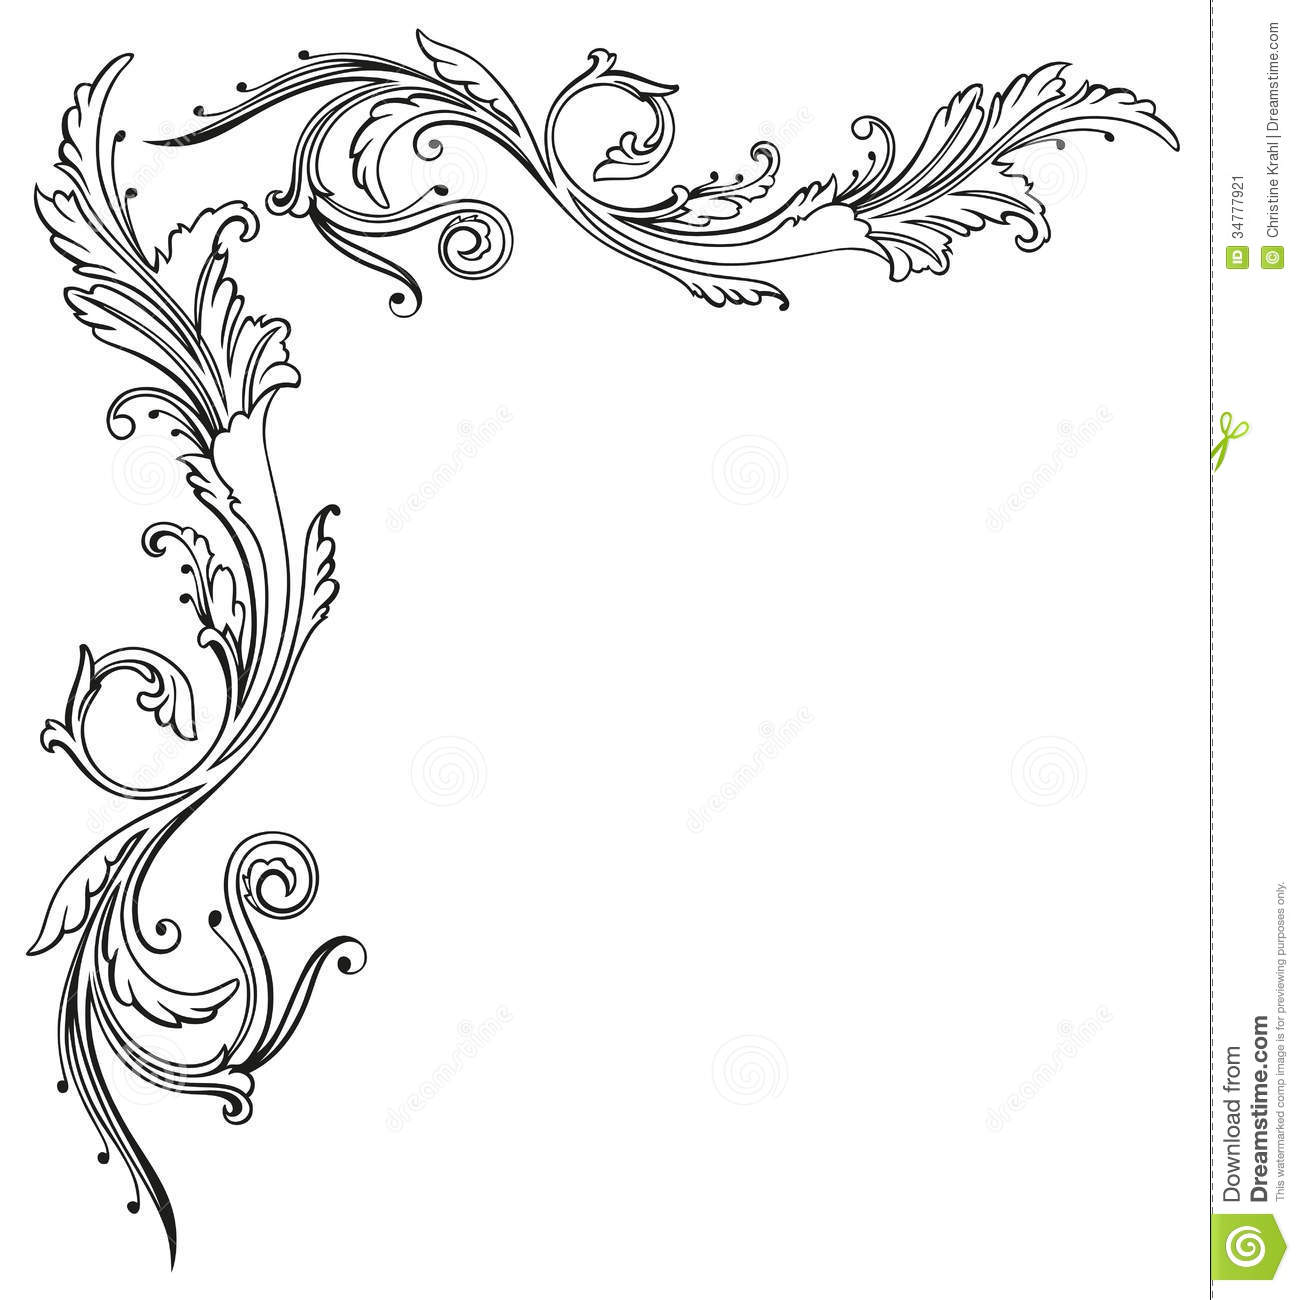 Line Drawing Flower Borders : Vintage vine border clipart suggest